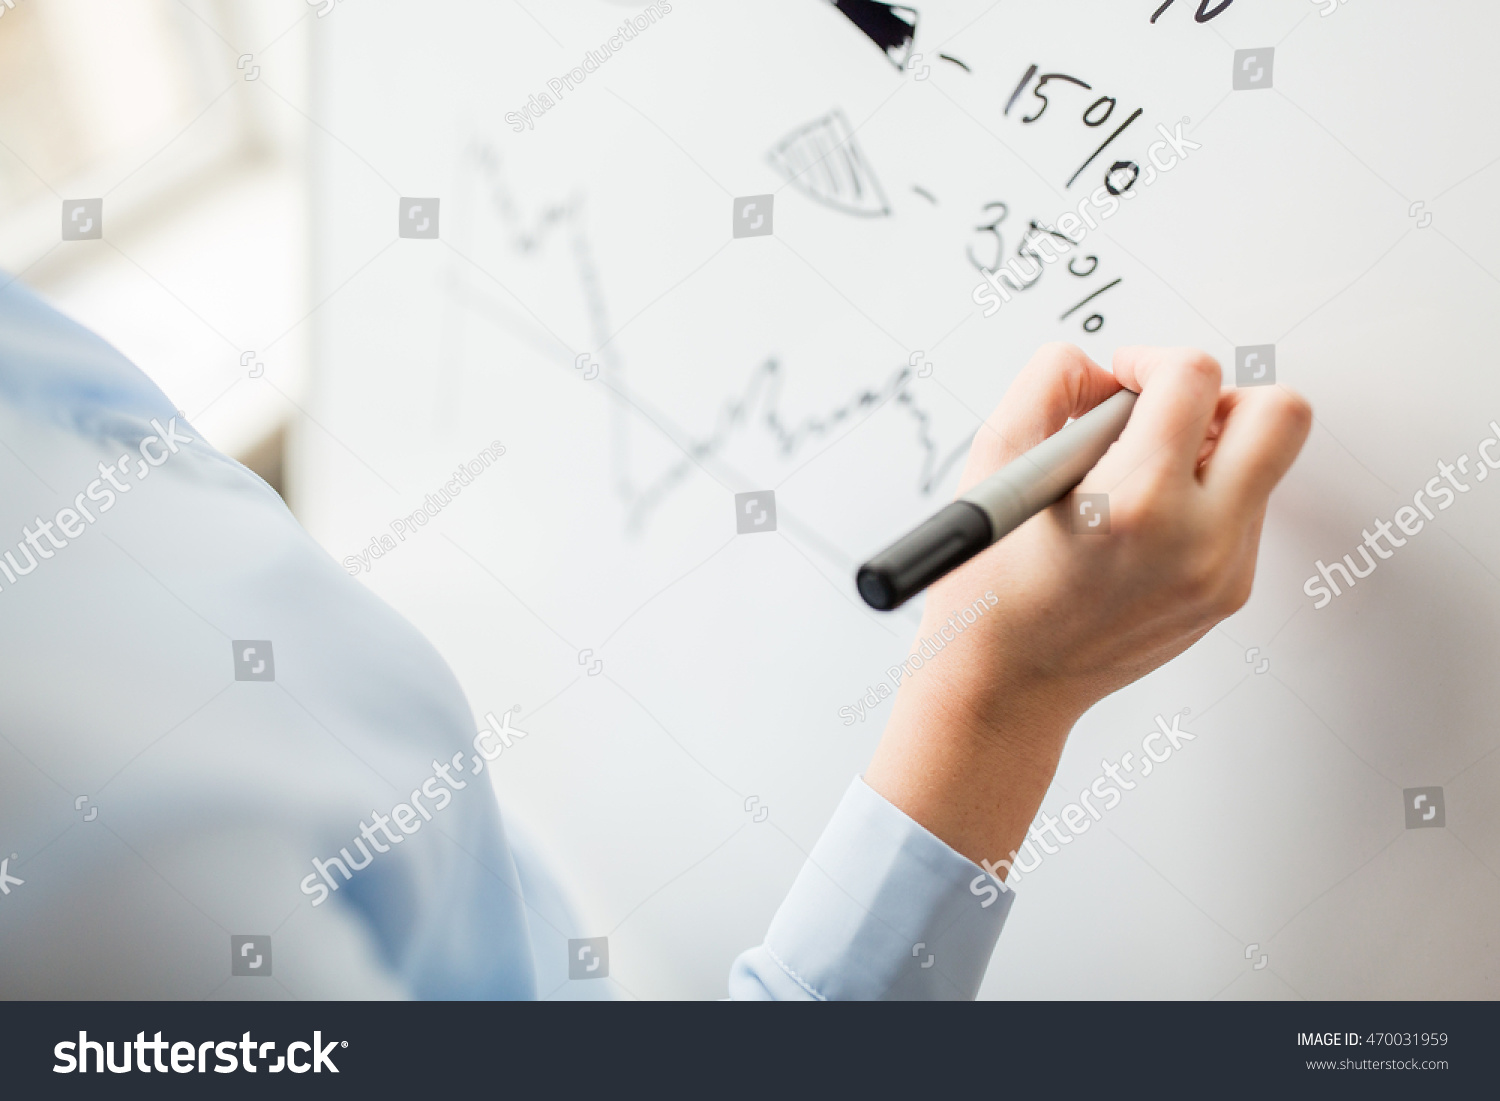 business people economics analytics and statistics concept close up of hand with marker drawing graph on office white board